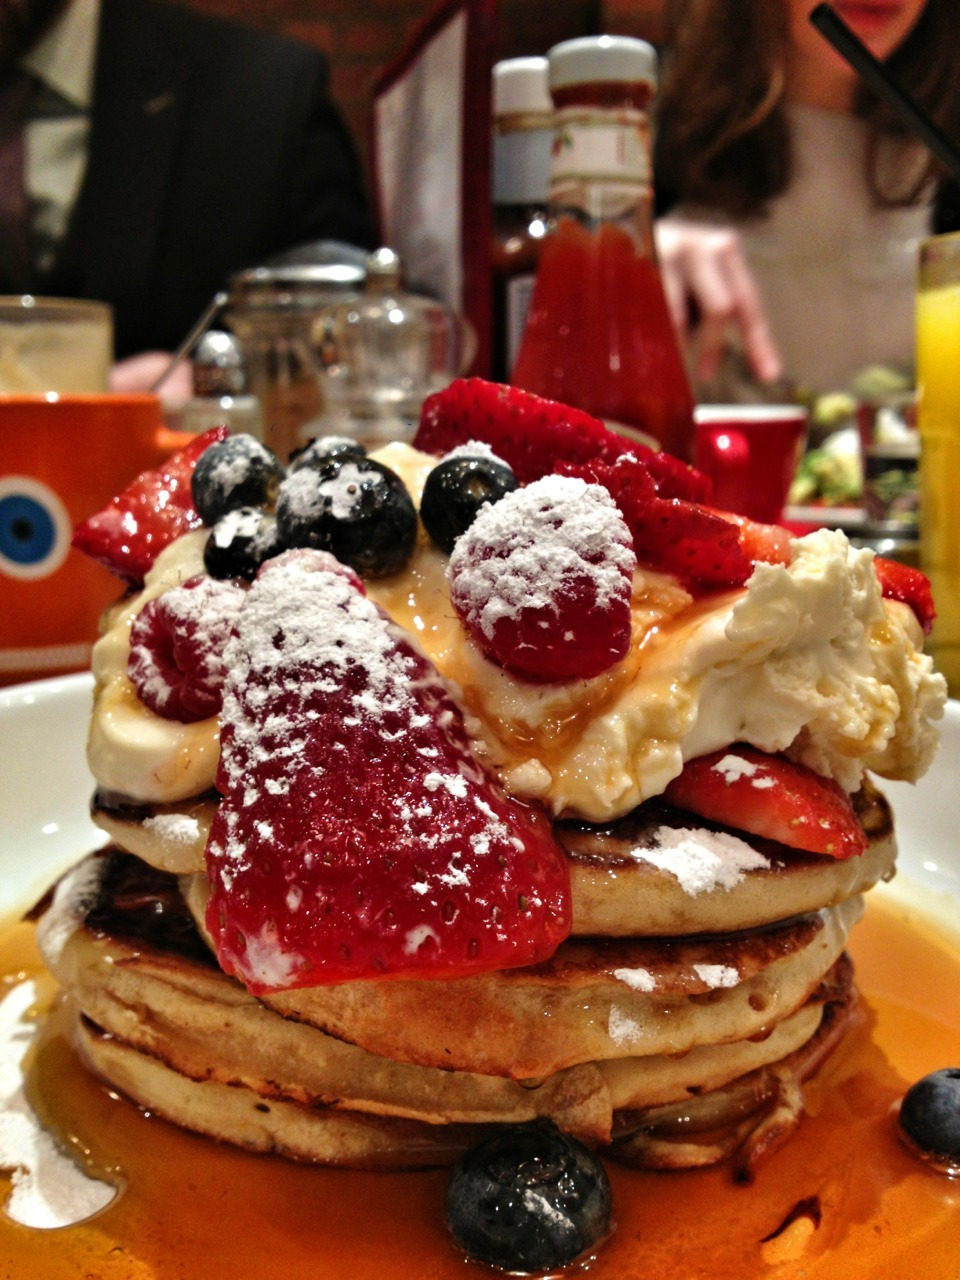 Pancake and Berries hits the spot at @thebrekkyclub